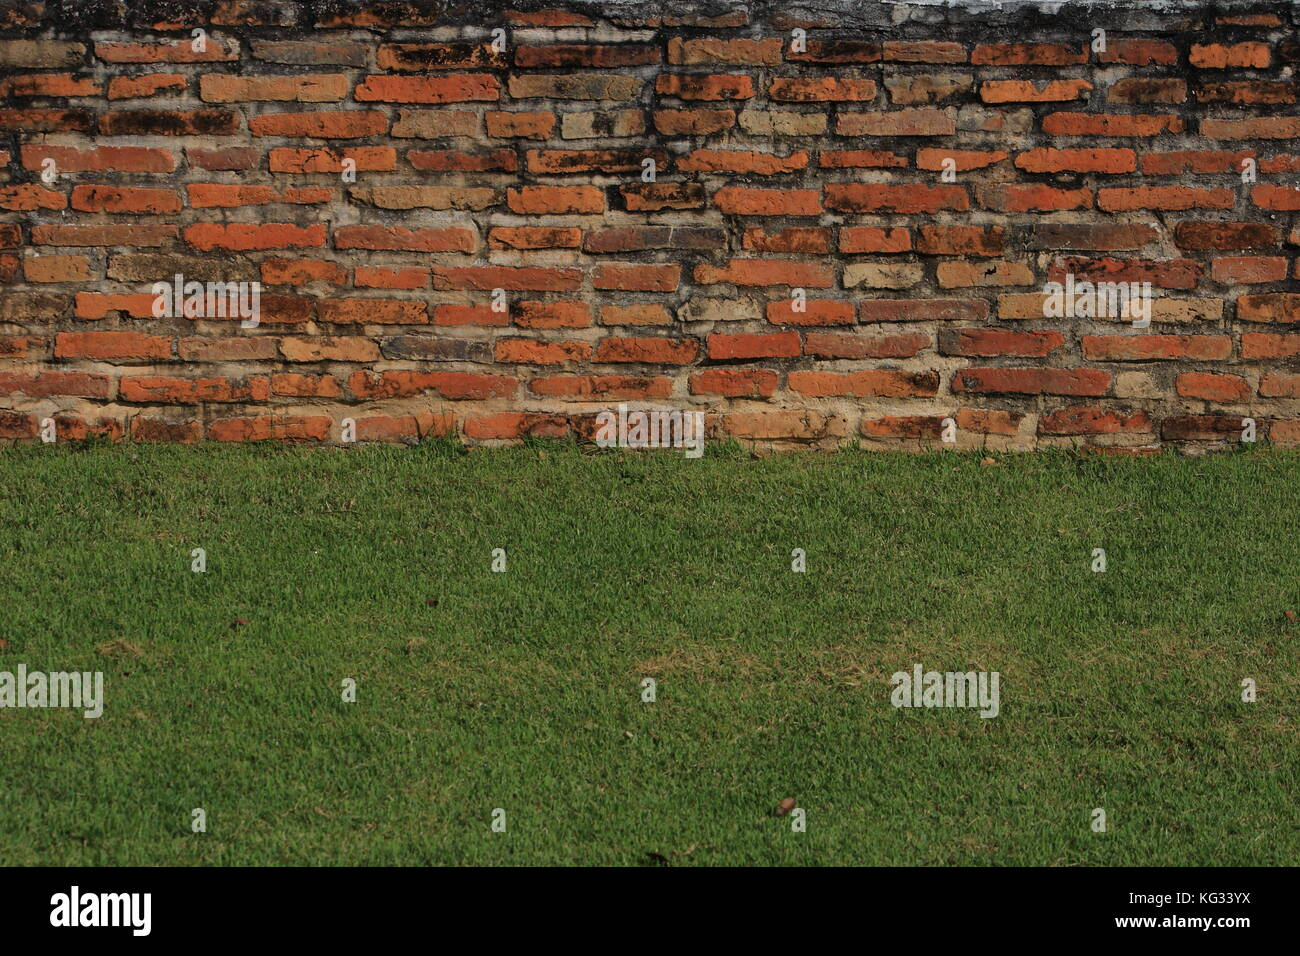 Old brick wall green grass material in a background image. - Stock Image